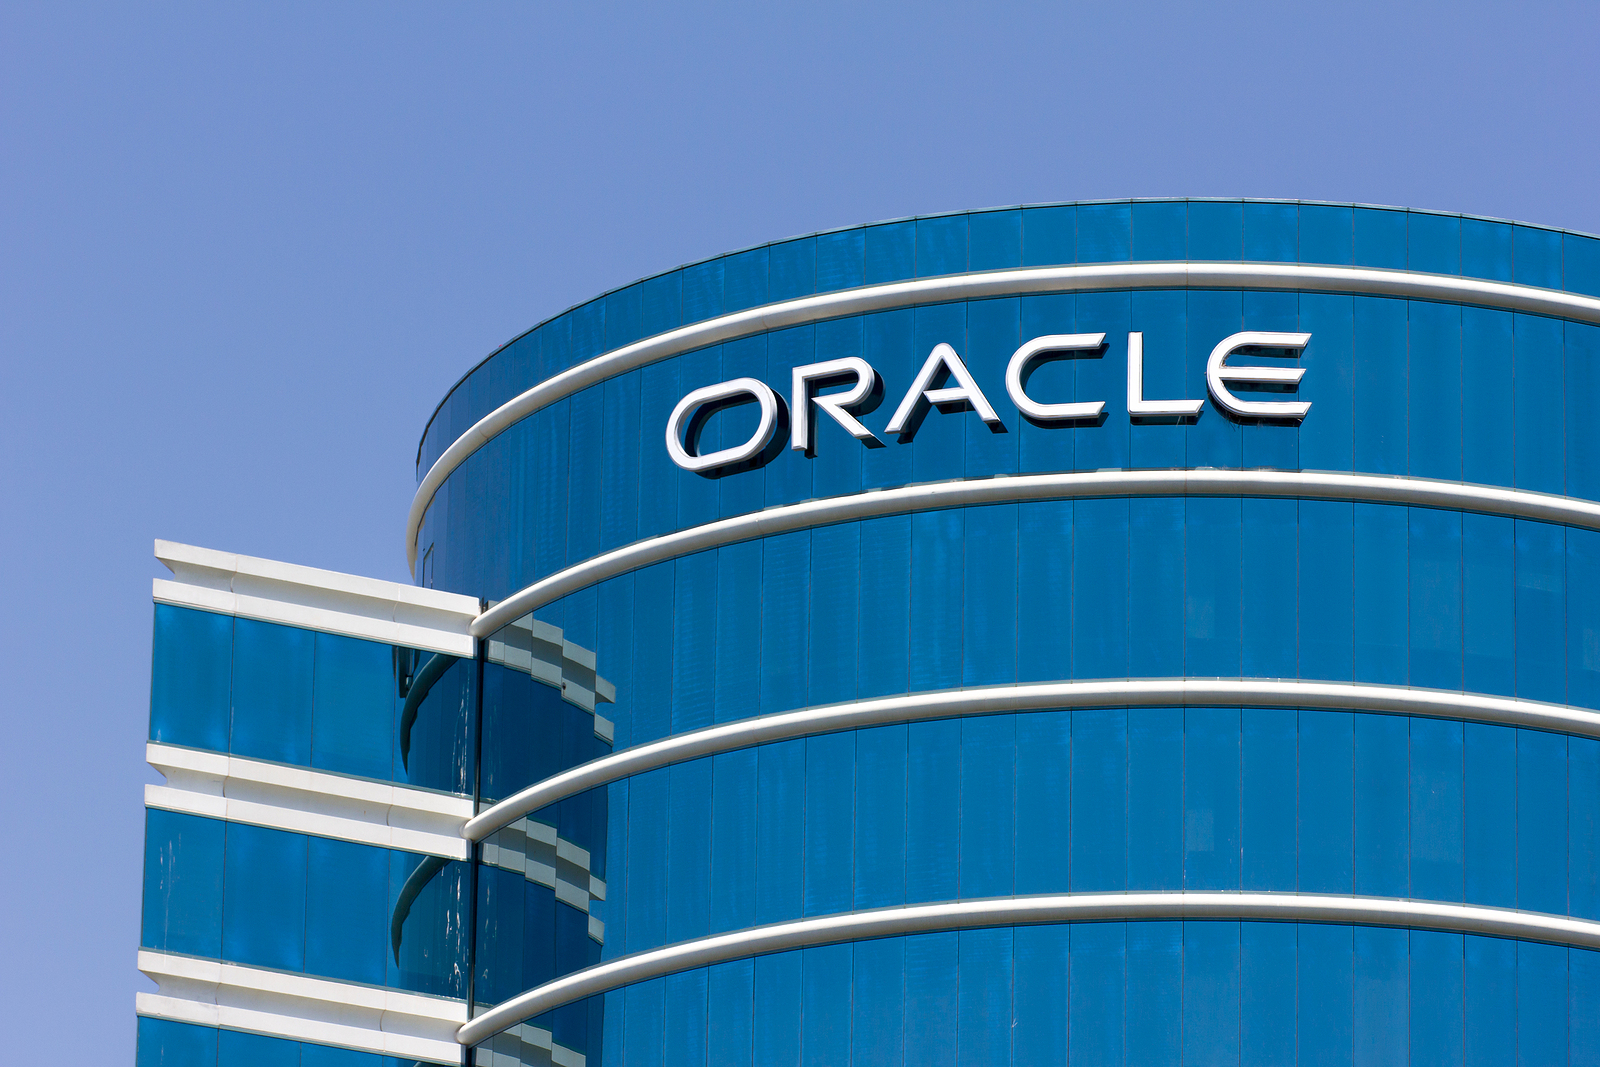 Oracle ORCL stock news and analysis